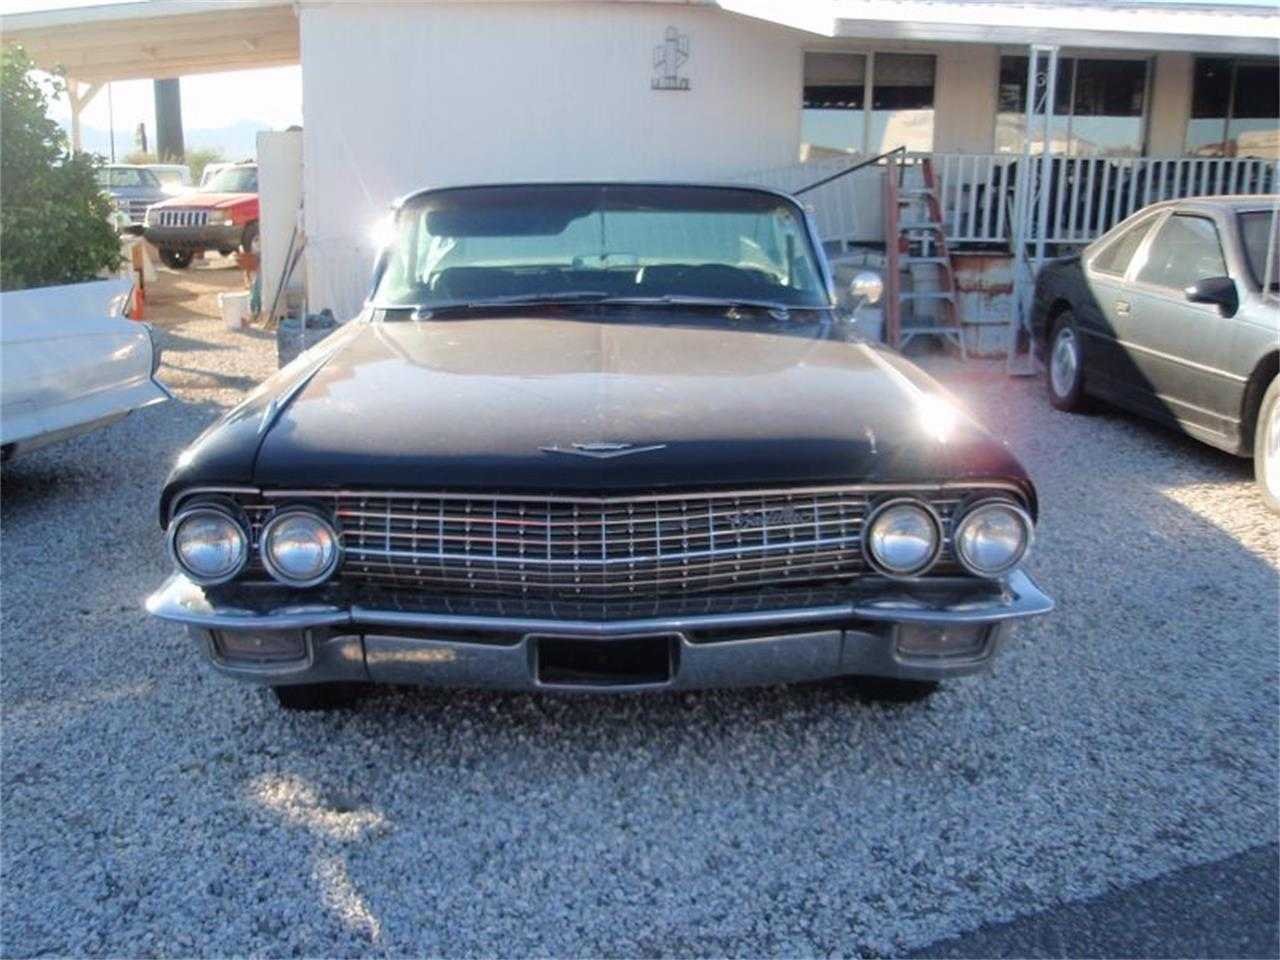 Large Picture of Classic 1961 Cadillac 4-Dr Sedan - $29,980.00 - 97OS